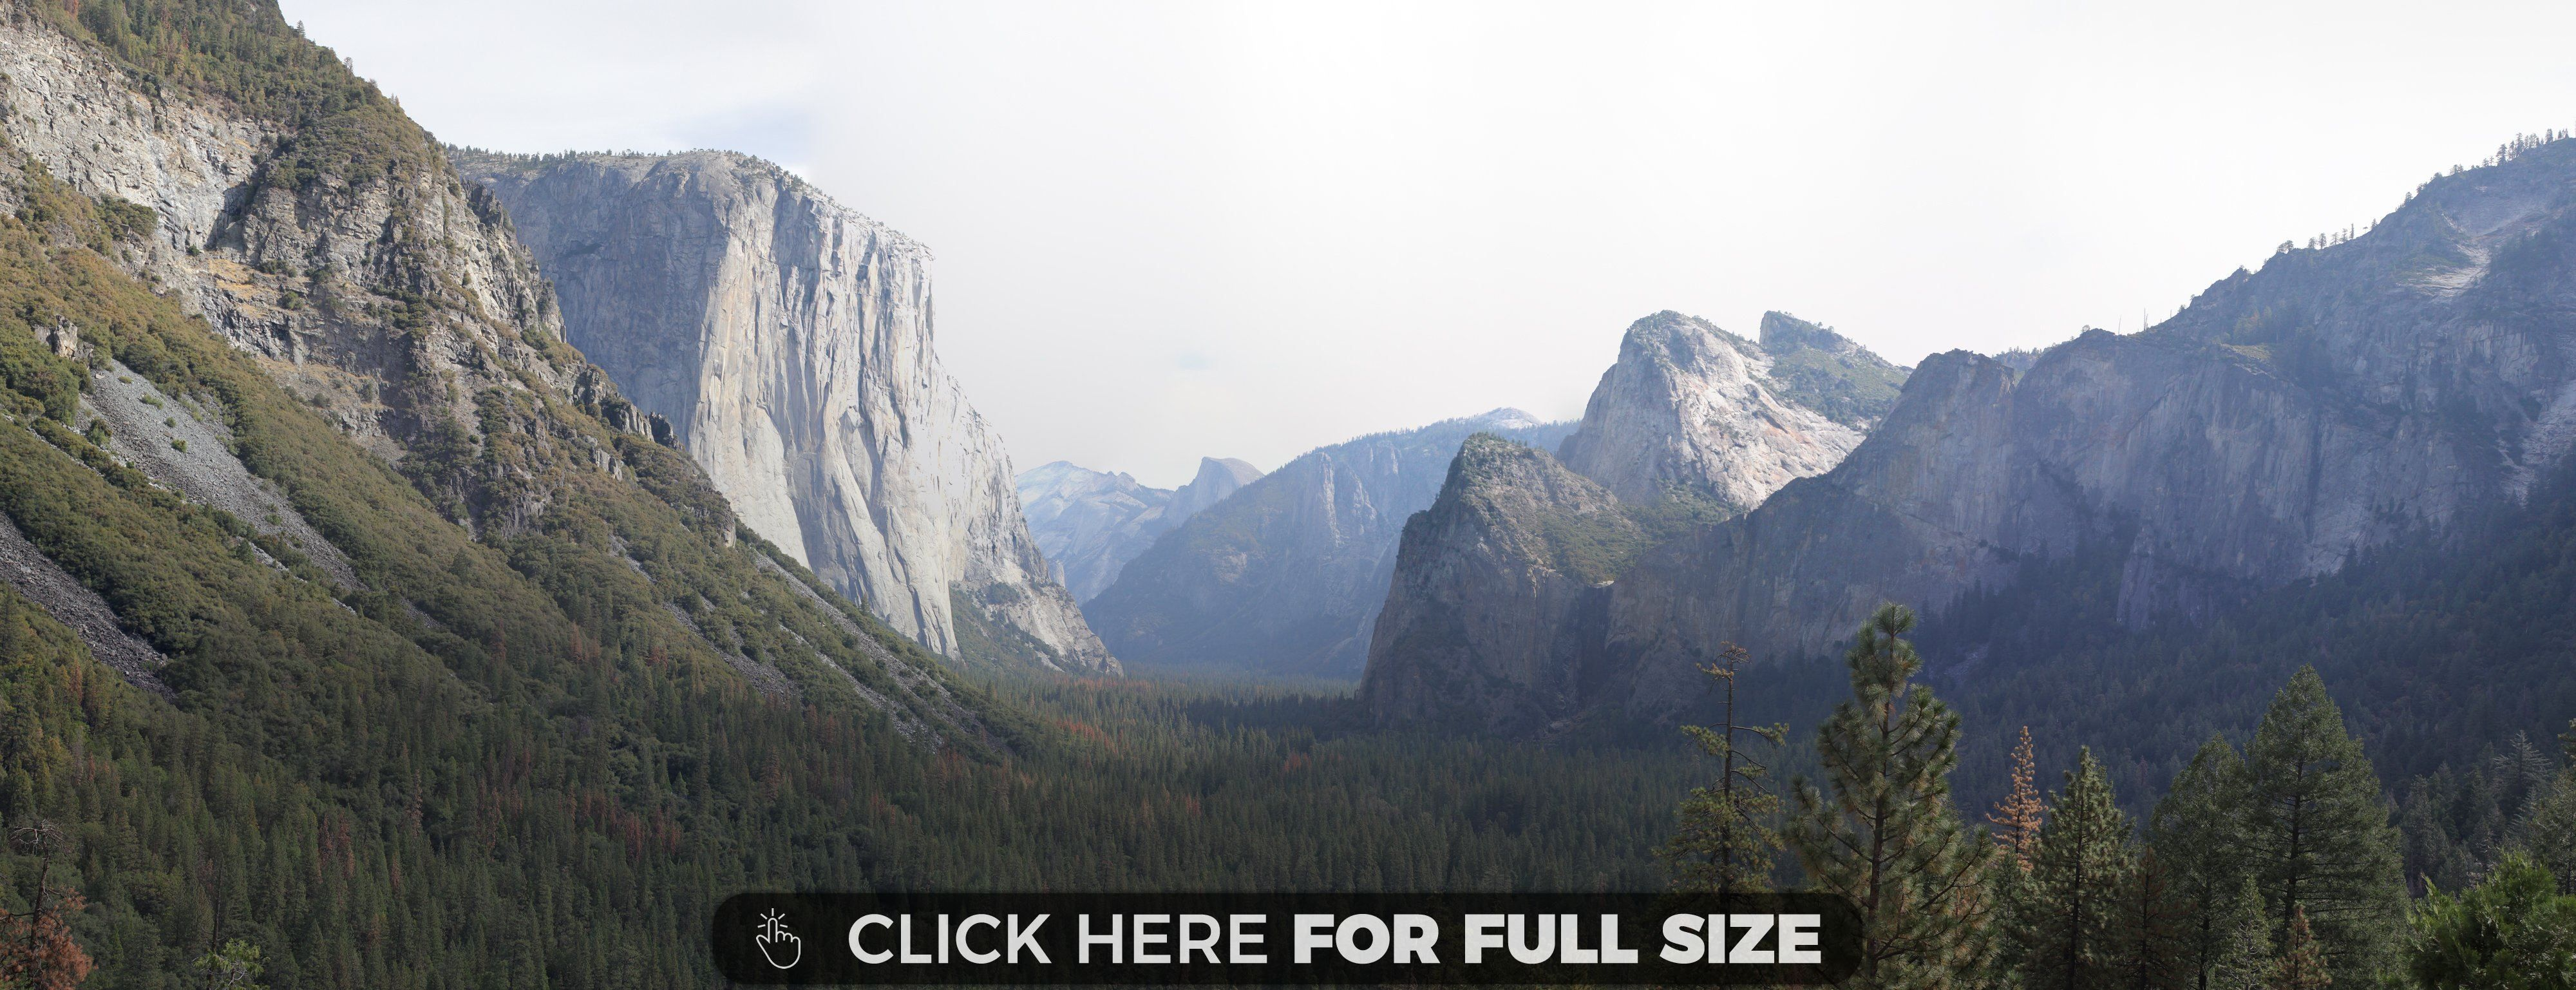 yosemite national park california at tunnel overlook wallpaper